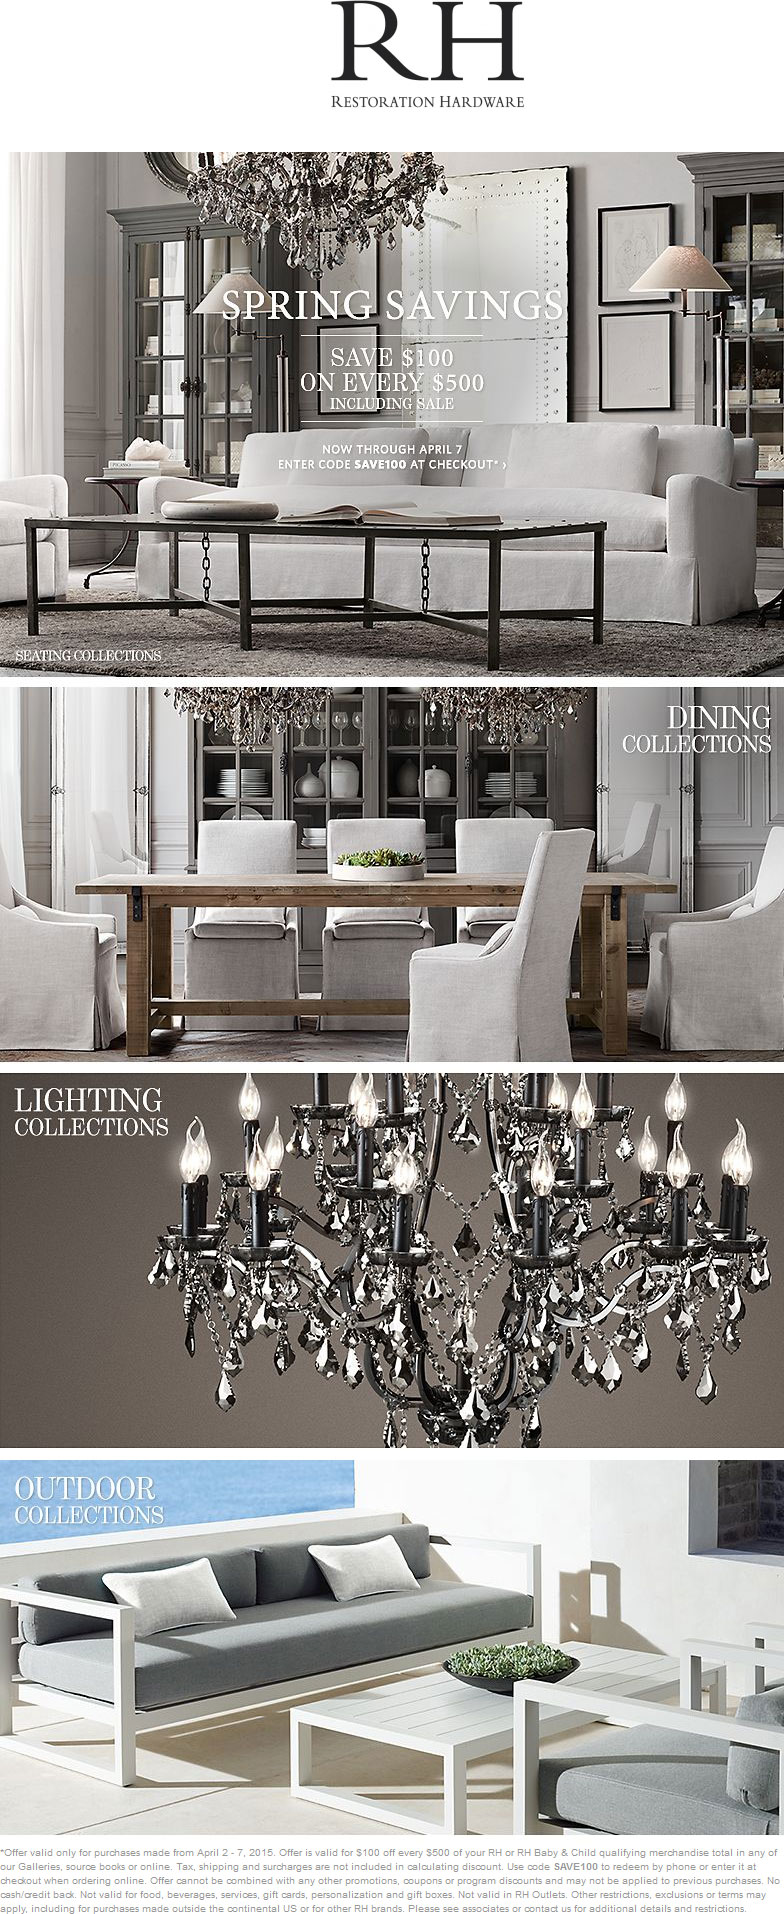 Restoration Hardware Coupon November 2017 $100 off every $500 at Restoration Hardware, or online via promo code SAVE100